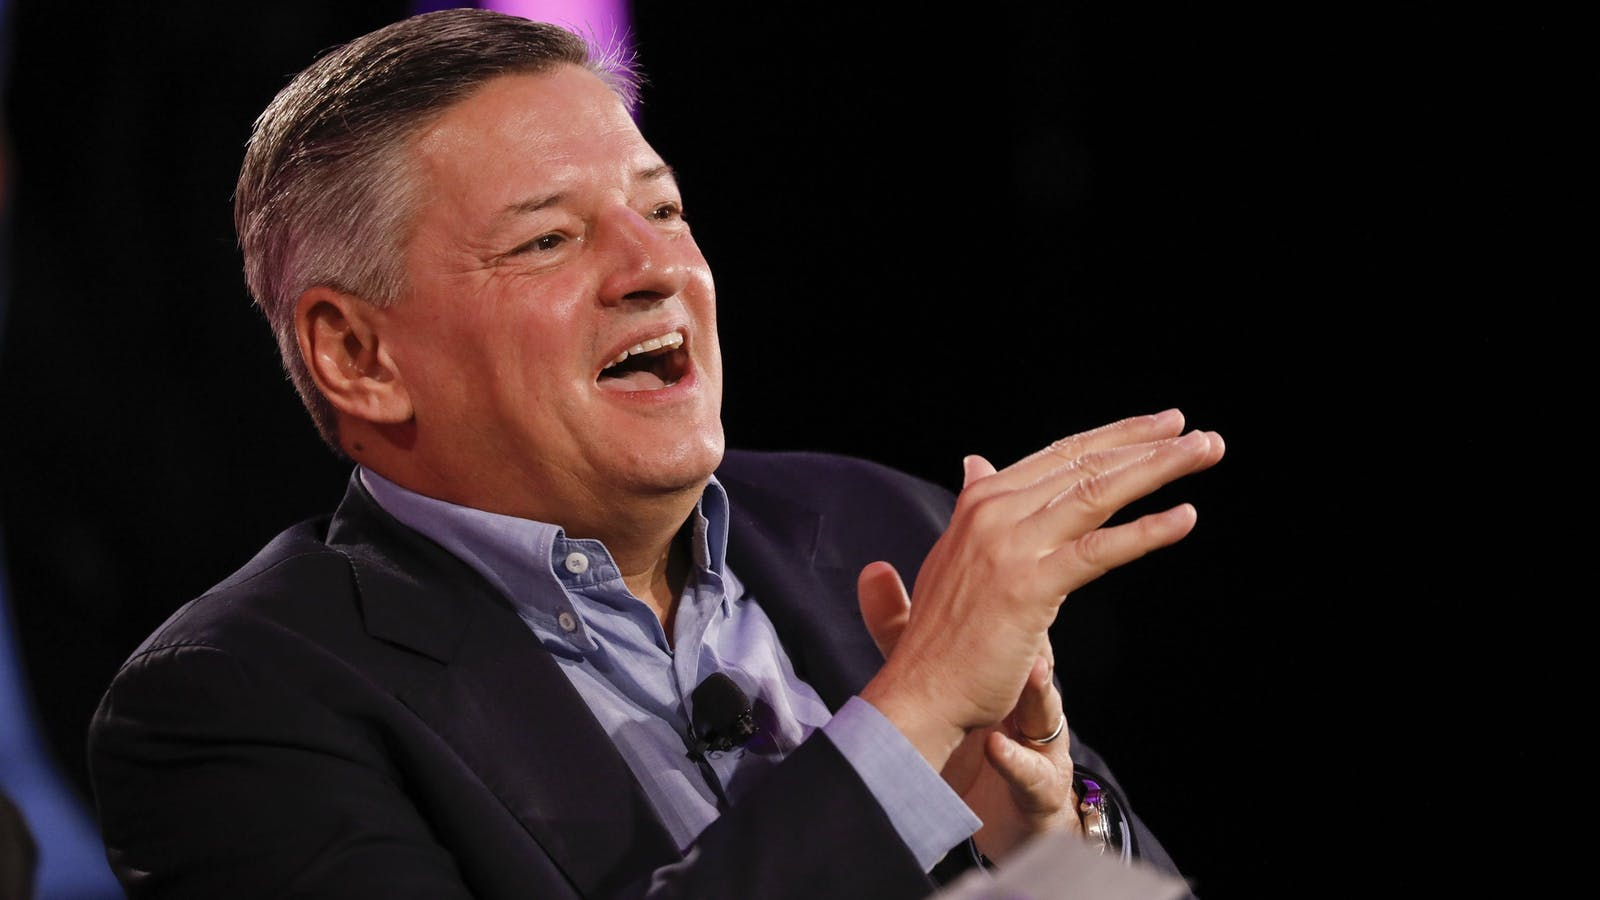 Netflix Co-CEO Ted Sarandos. Photo by Bloomberg.